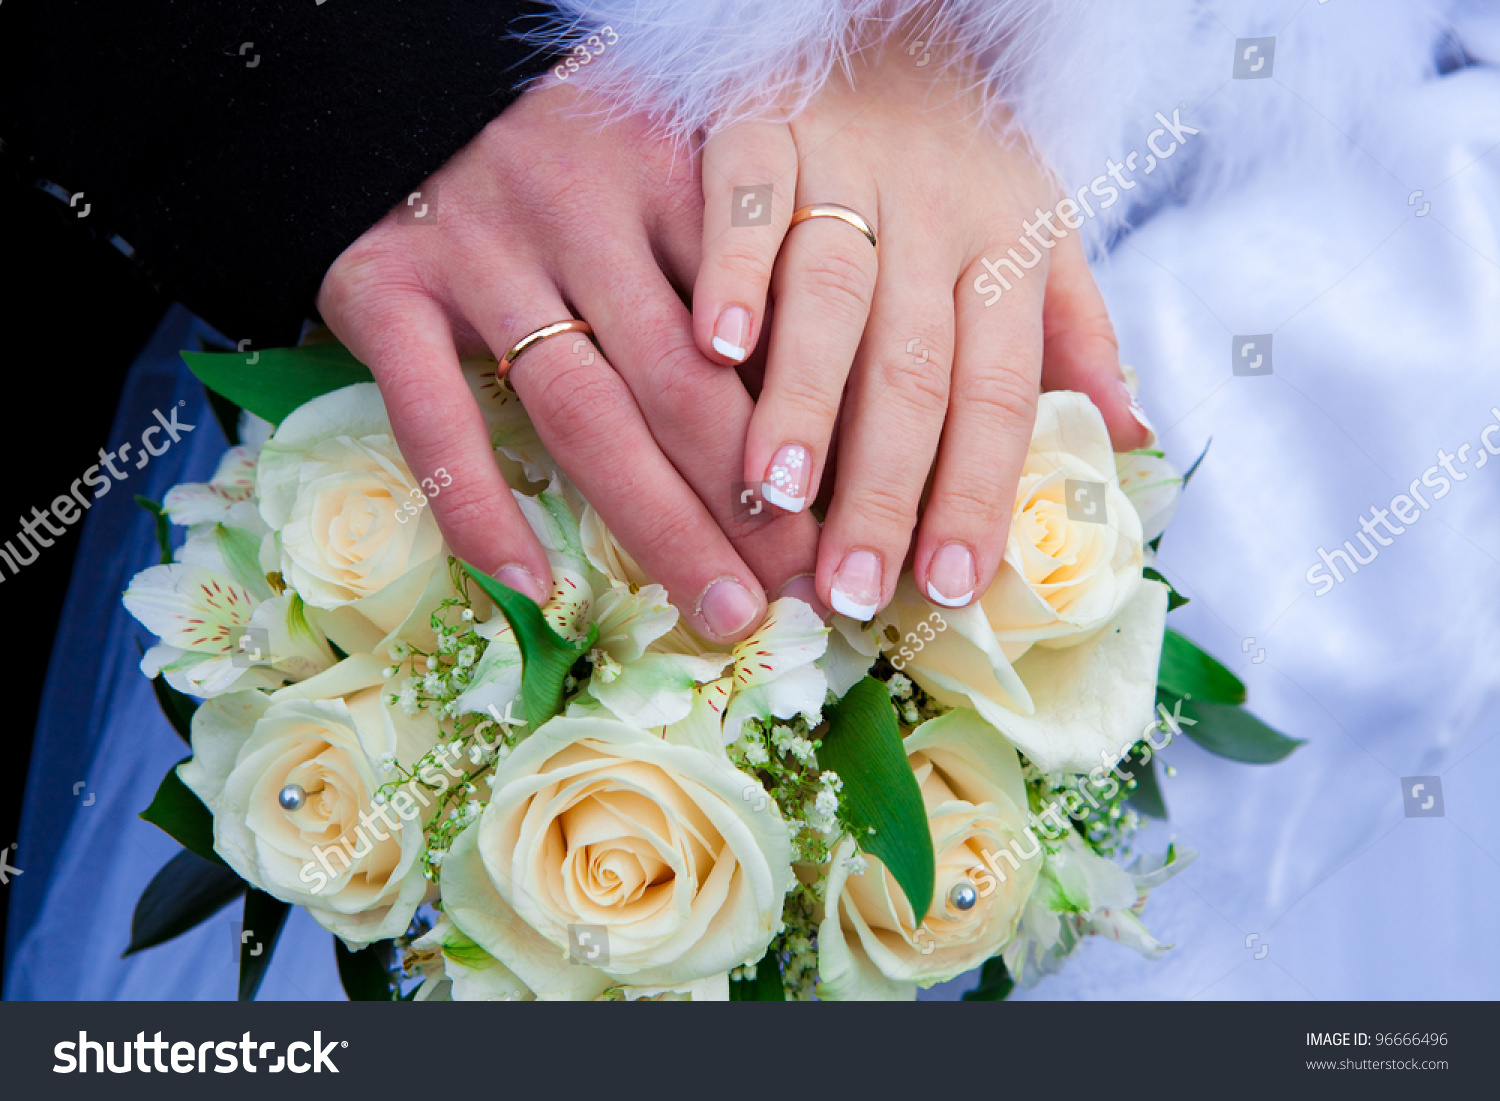 Hands Newlymarried Couple Wedding Rings Flowers Stock Photo (Safe to ...